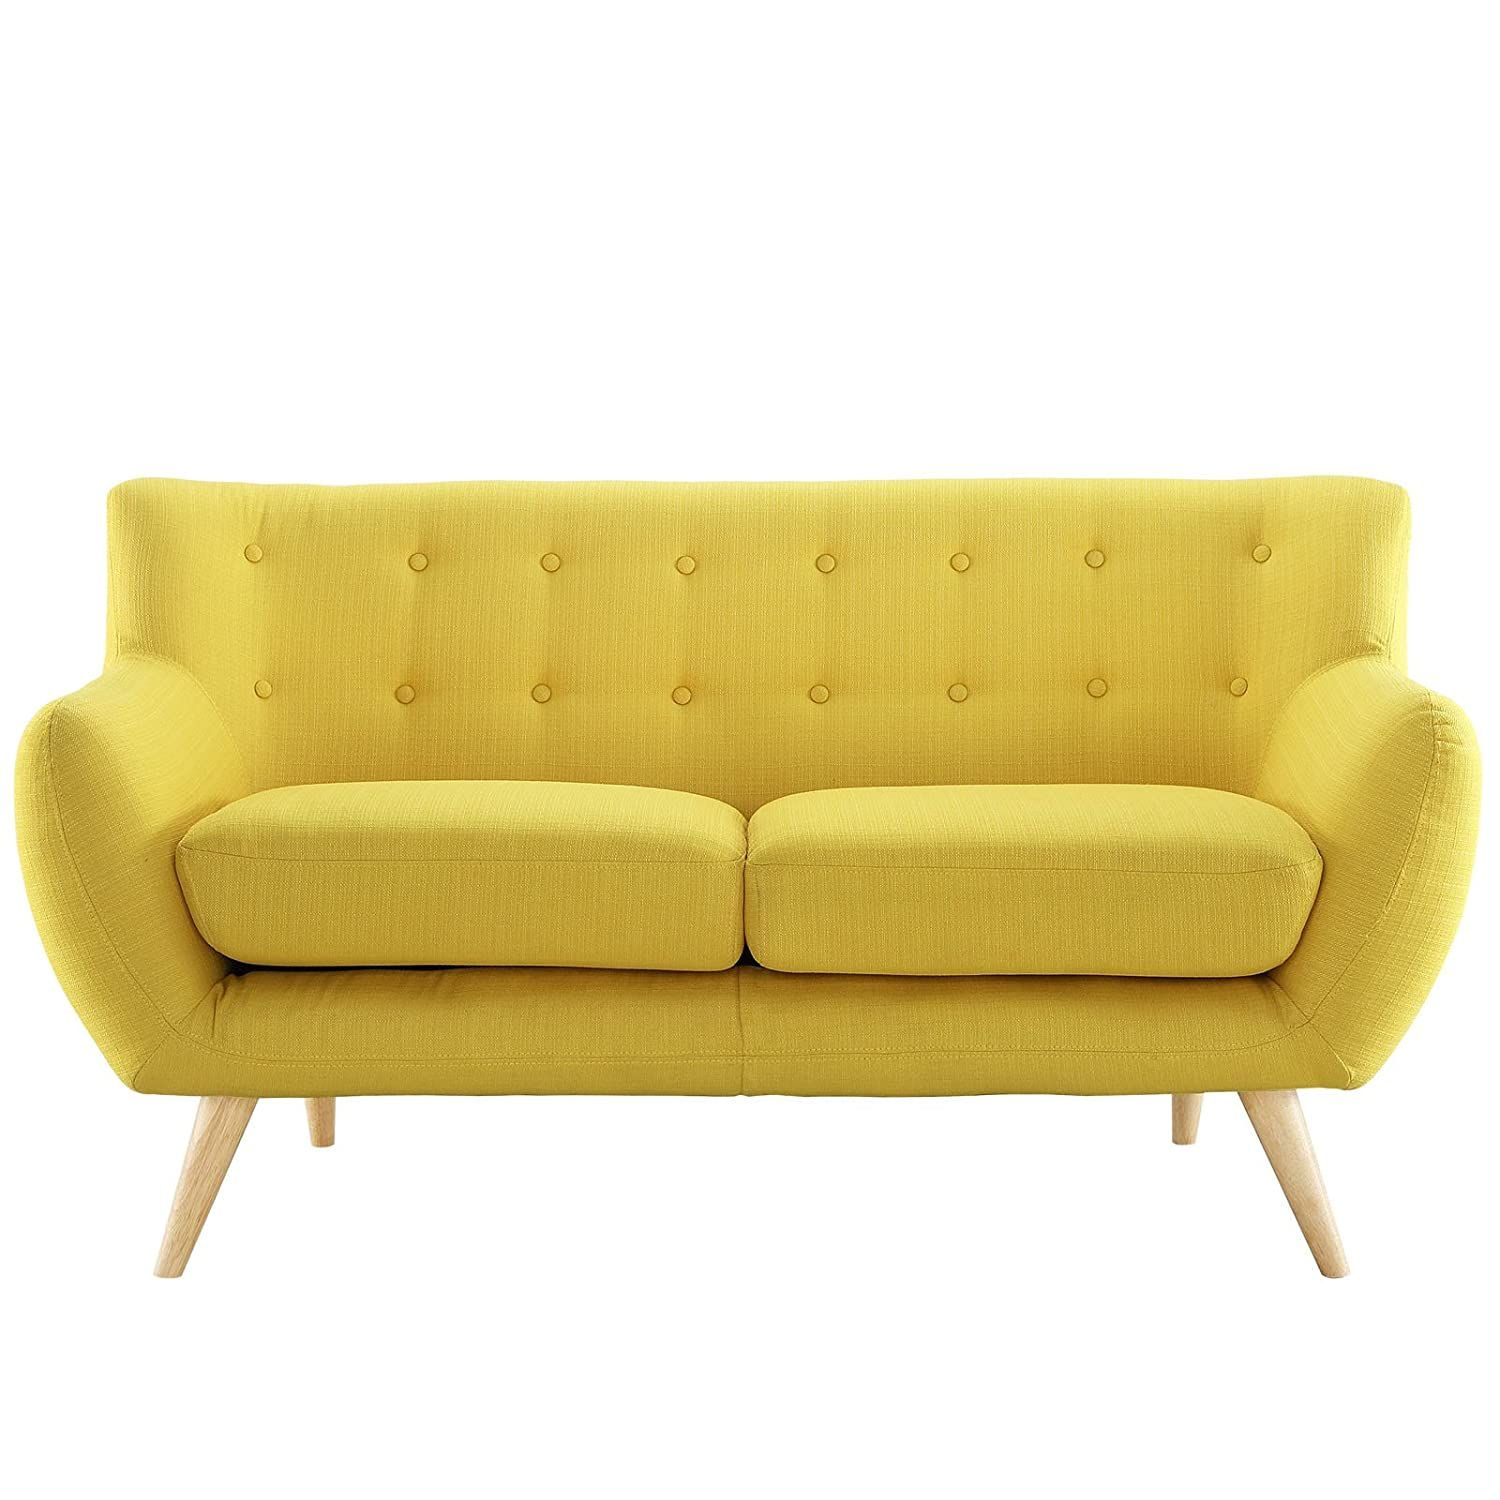 amazoncom modway remark mid century modern loveseat with upholstered fabric in sunny kitchen dining - Yellow Couch